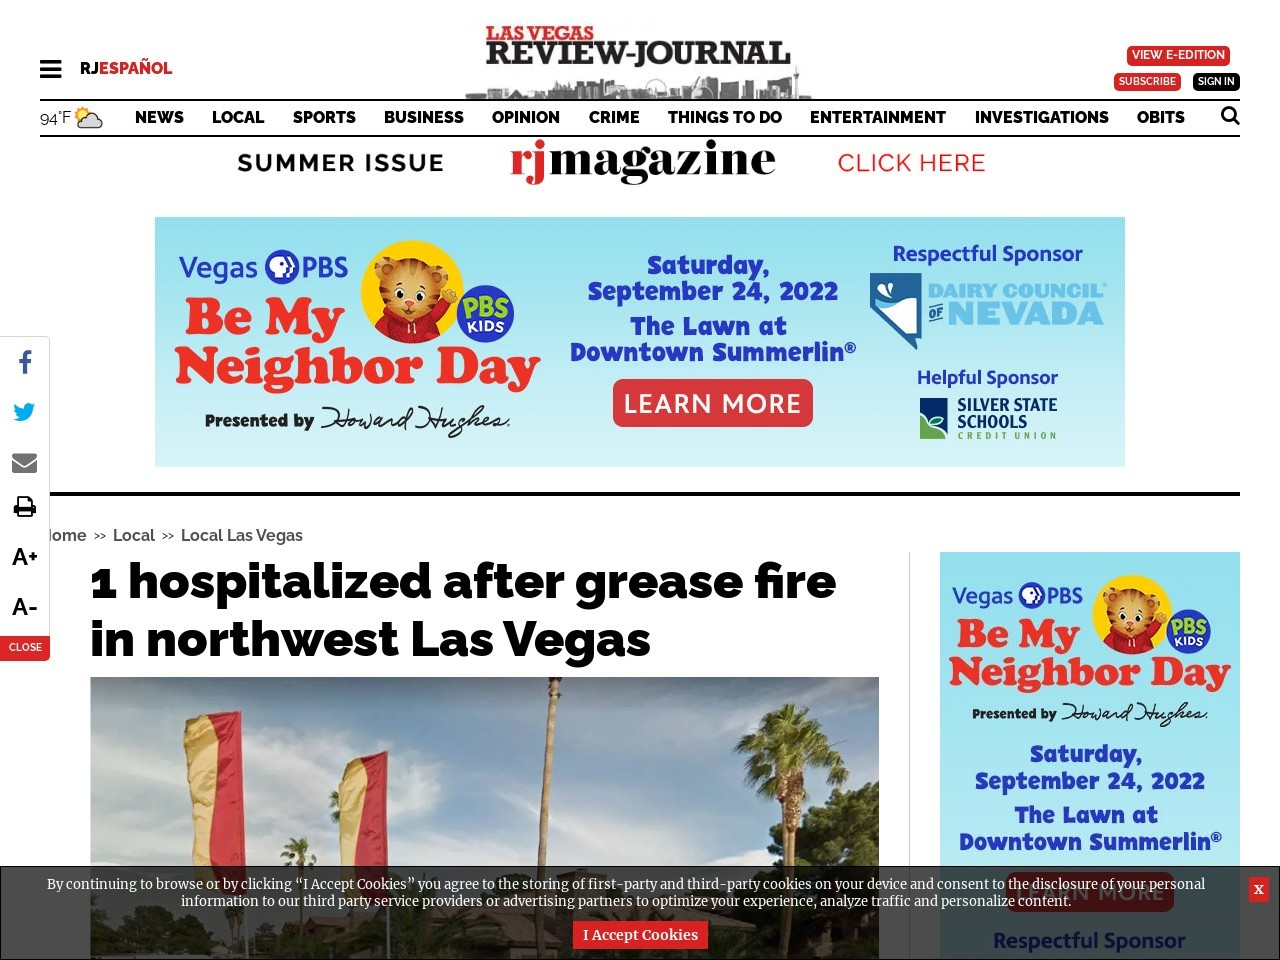 1 hospitalized after grease fire in northwest Las Vegas